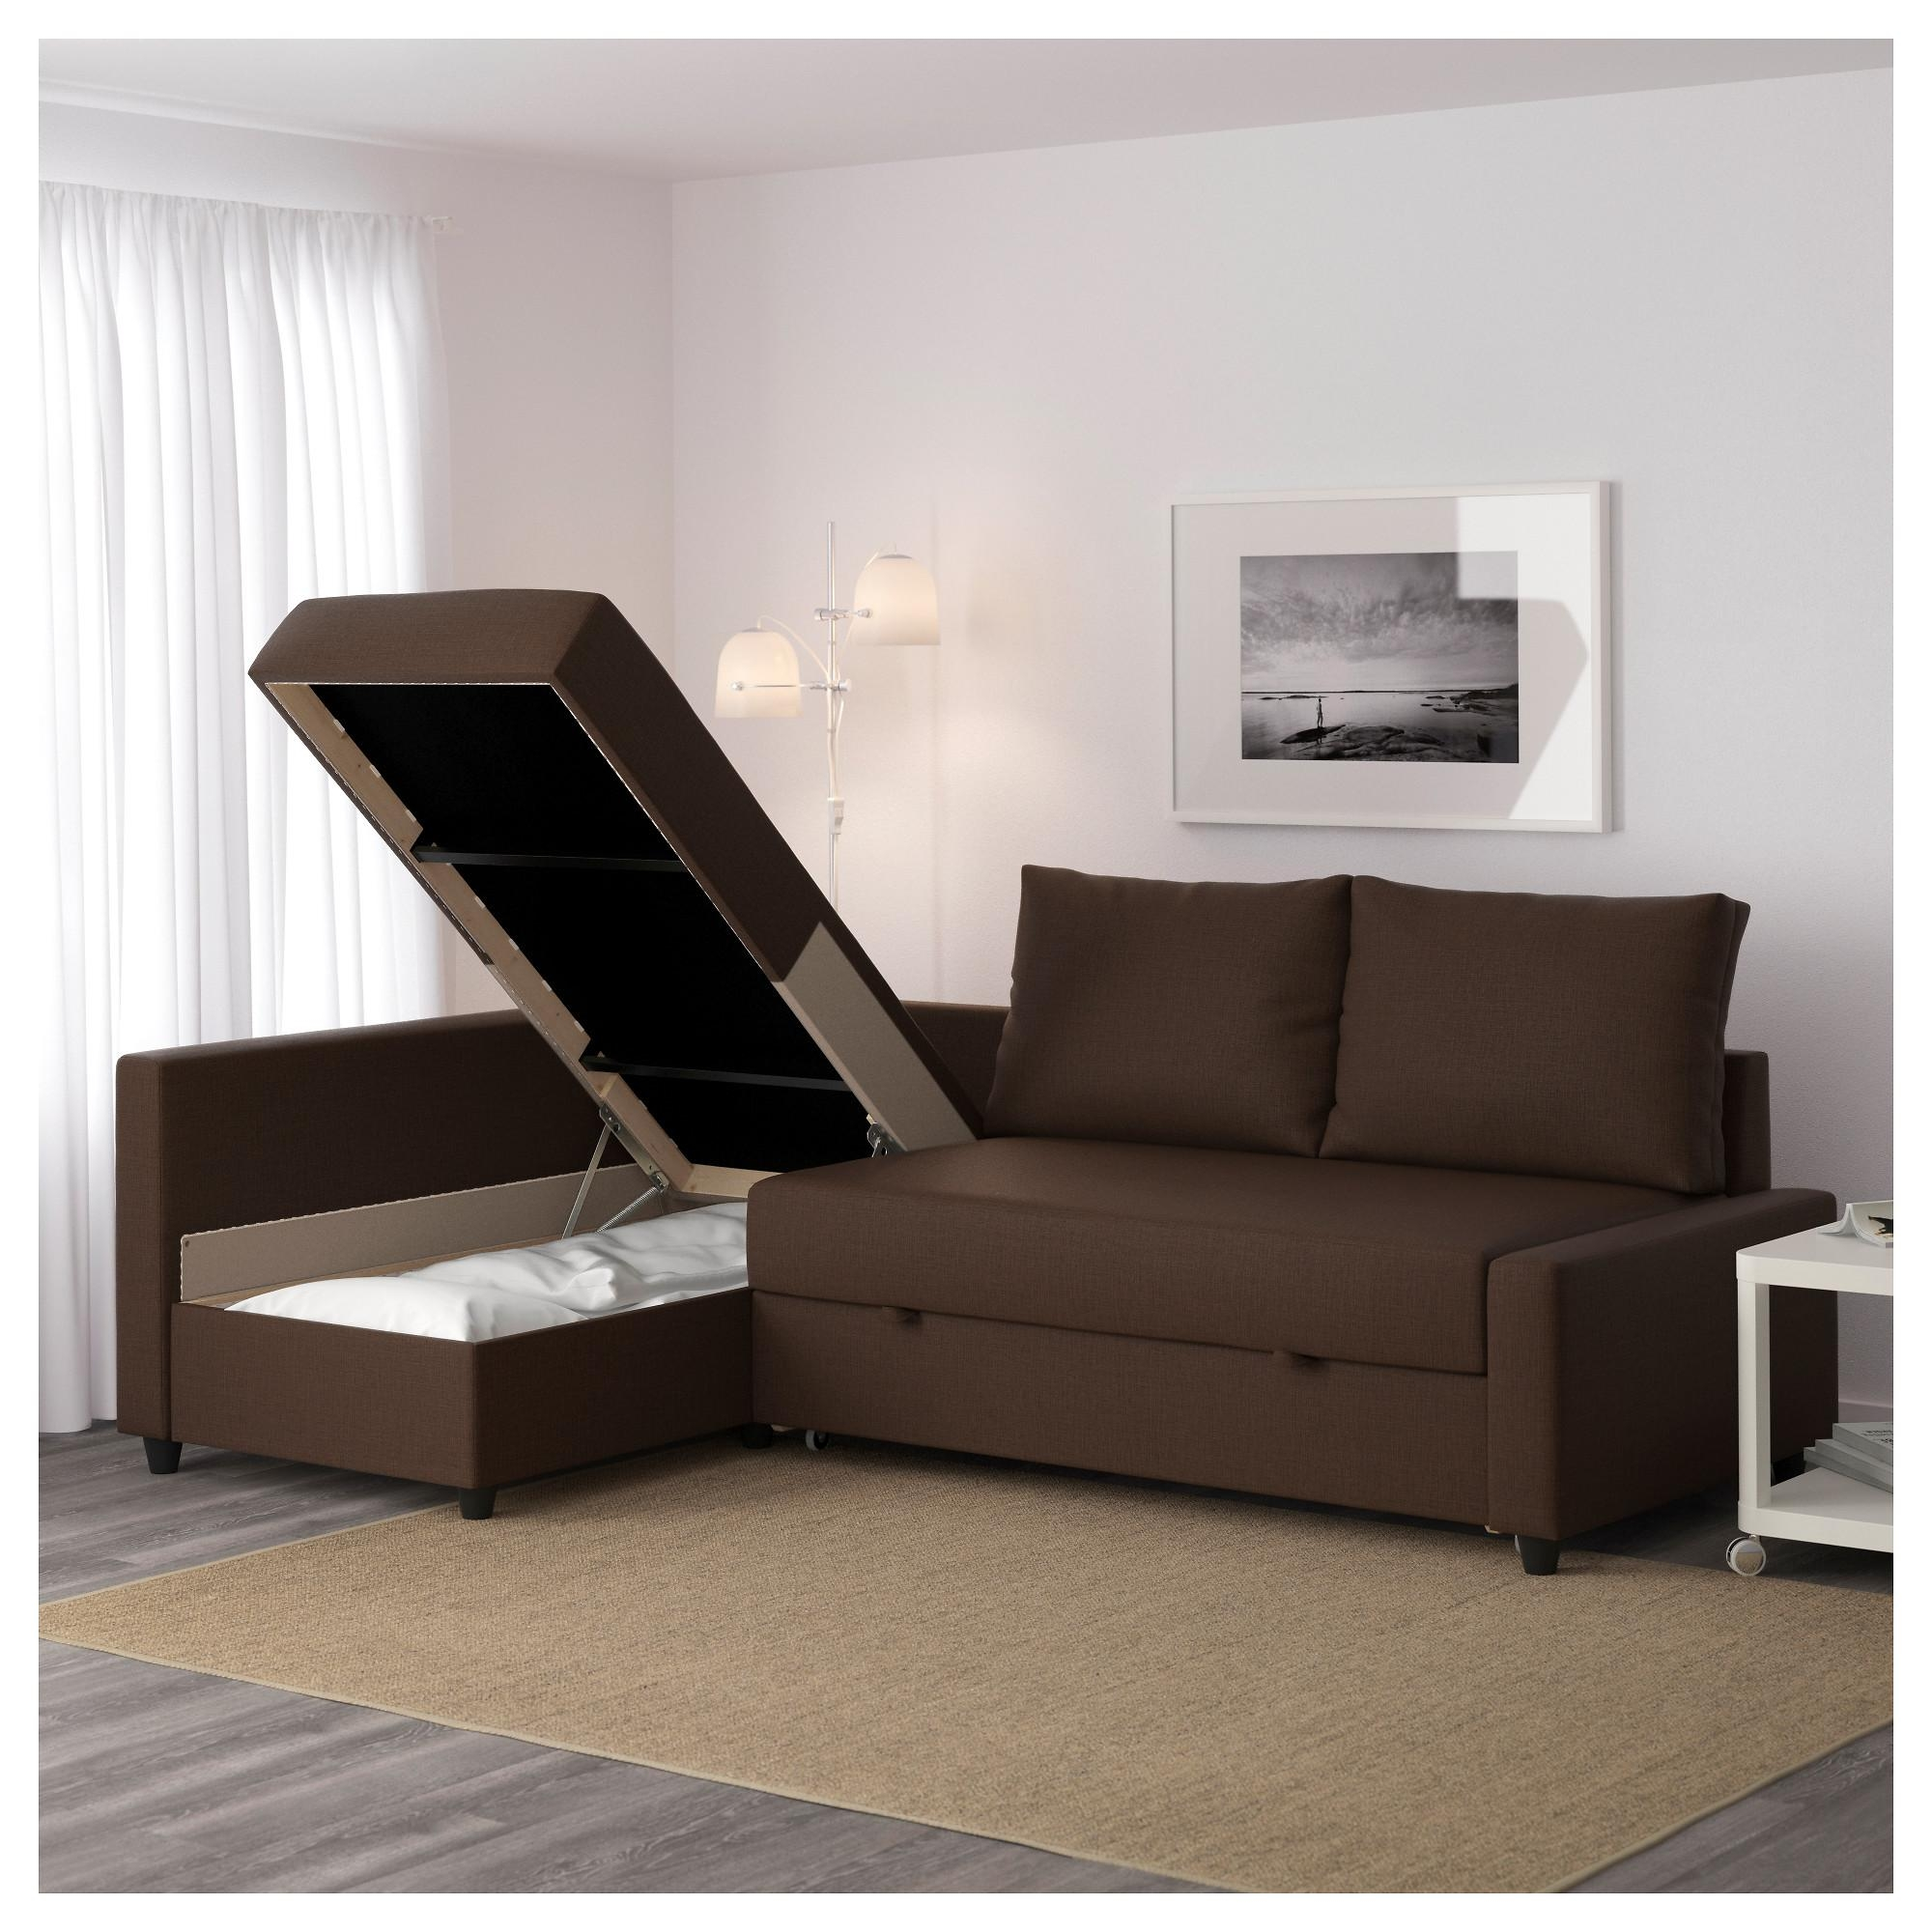 Sofa Bed With Chaise Lounge | Sofa Gallery | Kengire Inside Sofa Beds With Chaise Lounge (View 16 of 20)